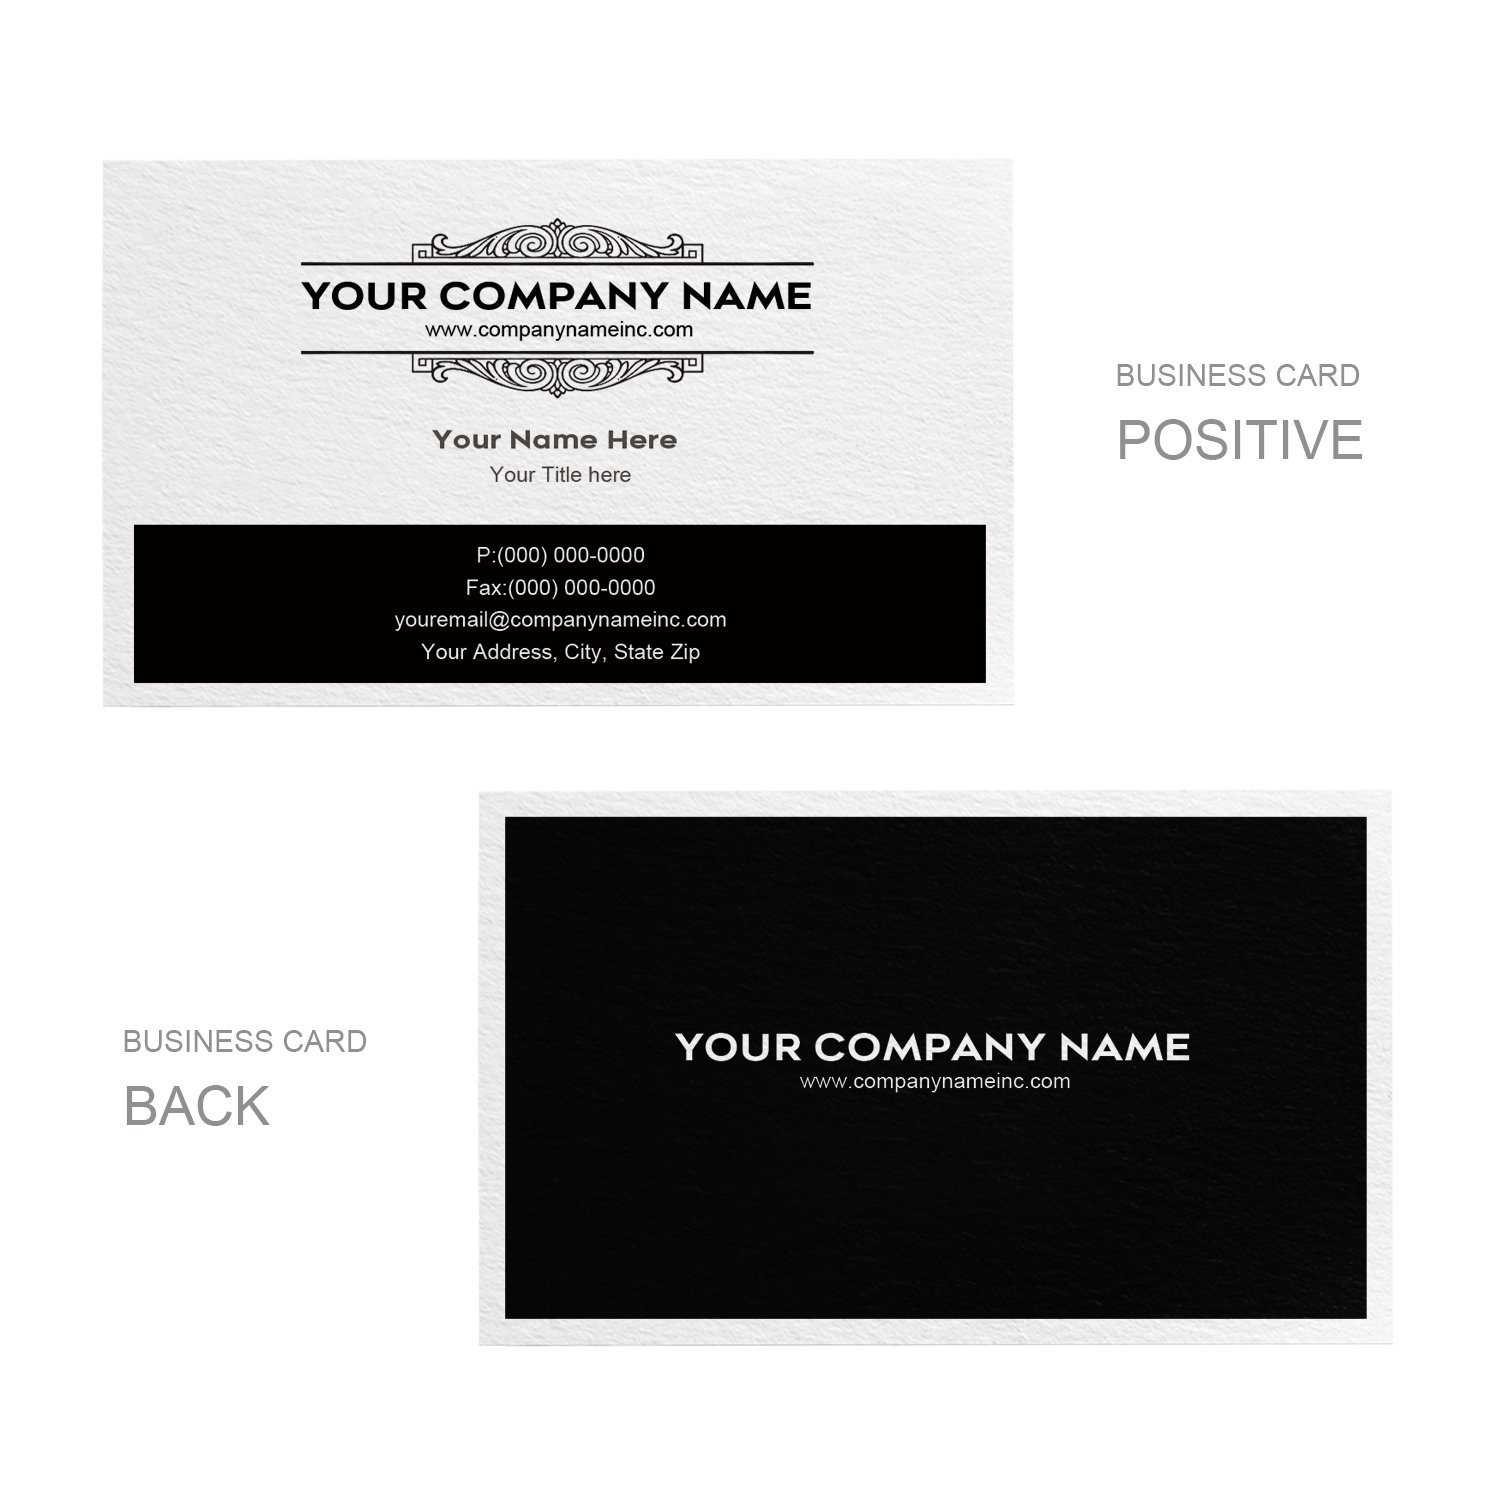 Amazon mvpcard custom advanced business card color double amazon mvpcard custom advanced business card color double sided luxury touch 200 500 pieces a 500 smooth office products colourmoves